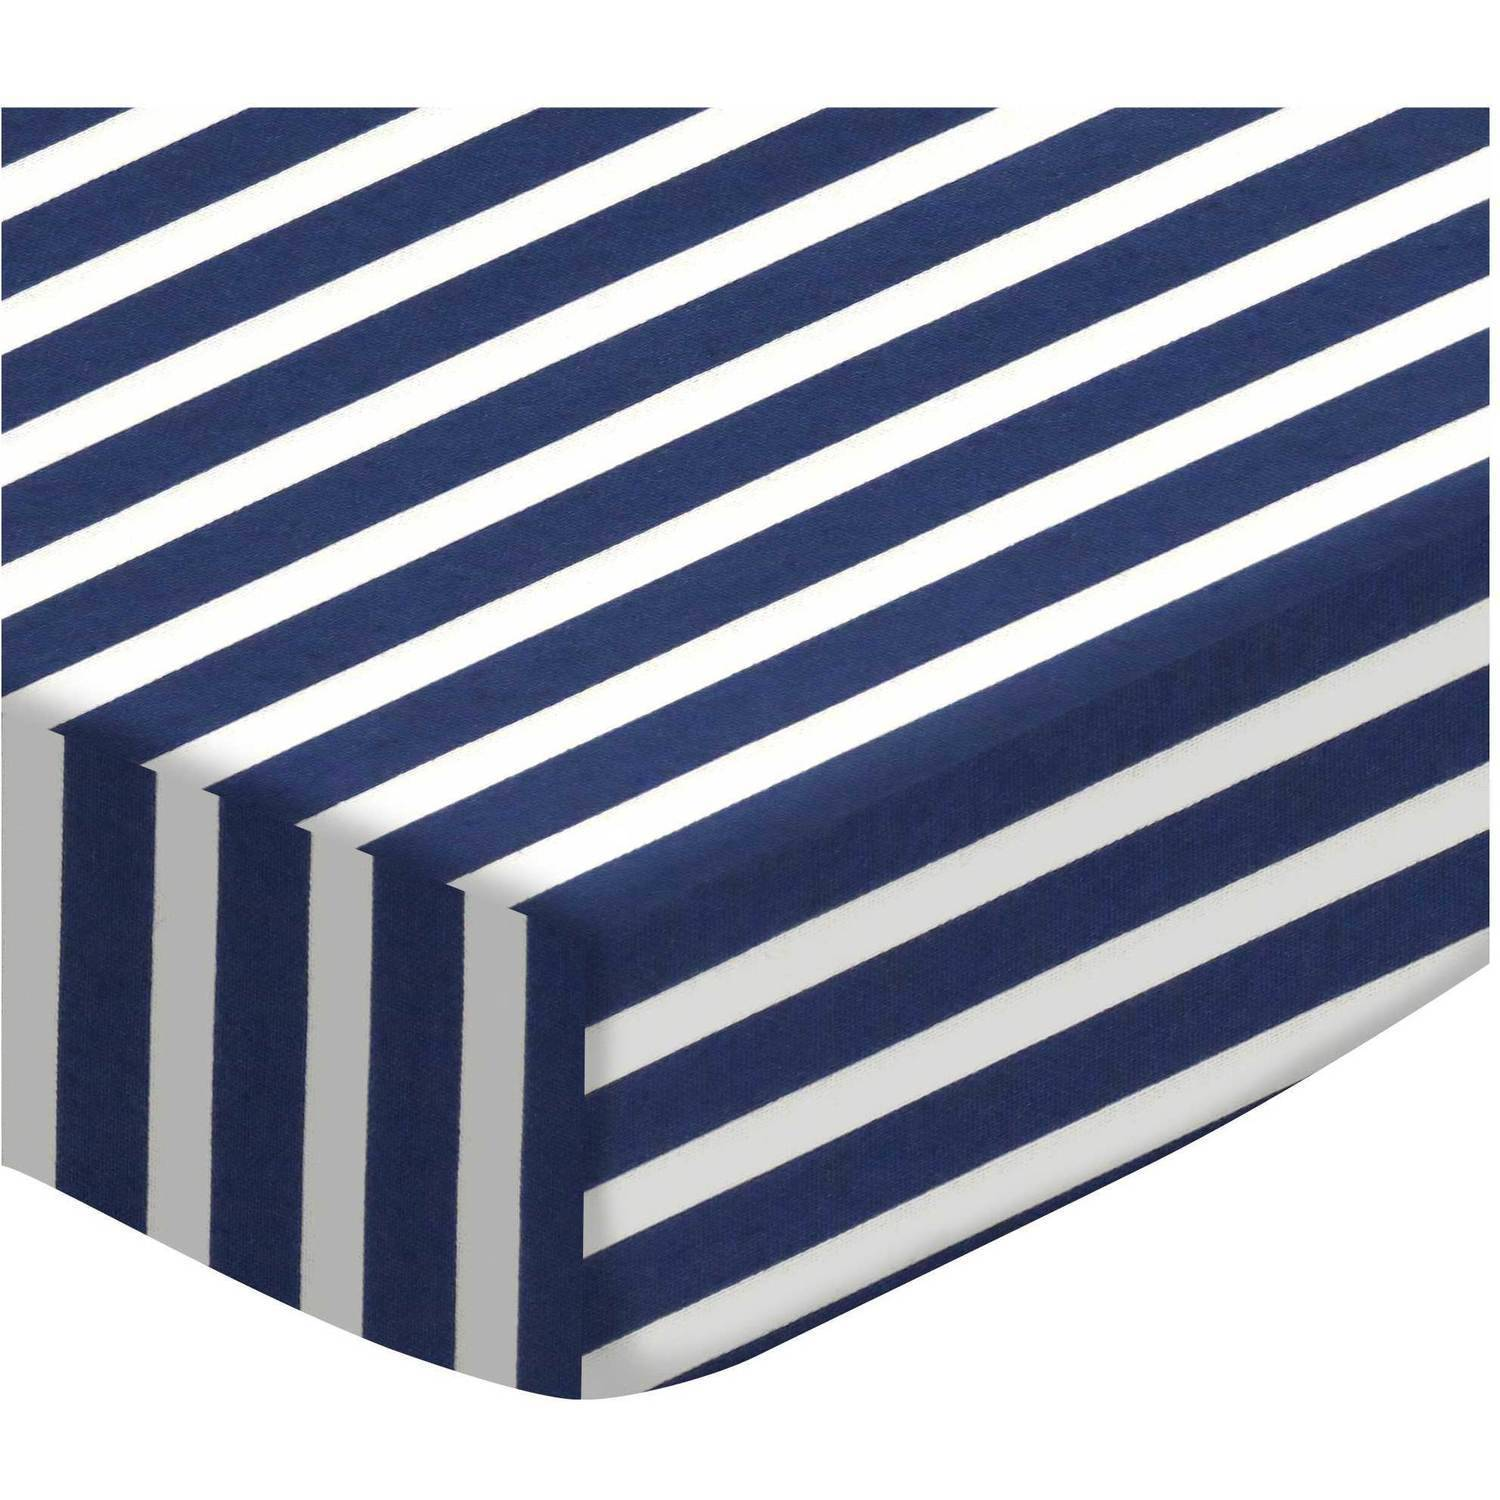 SheetWorld Fitted Oval Crib Sheet (Stokke Sleepi) -  Primary Navy Stripe Woven (Choose Your Color)